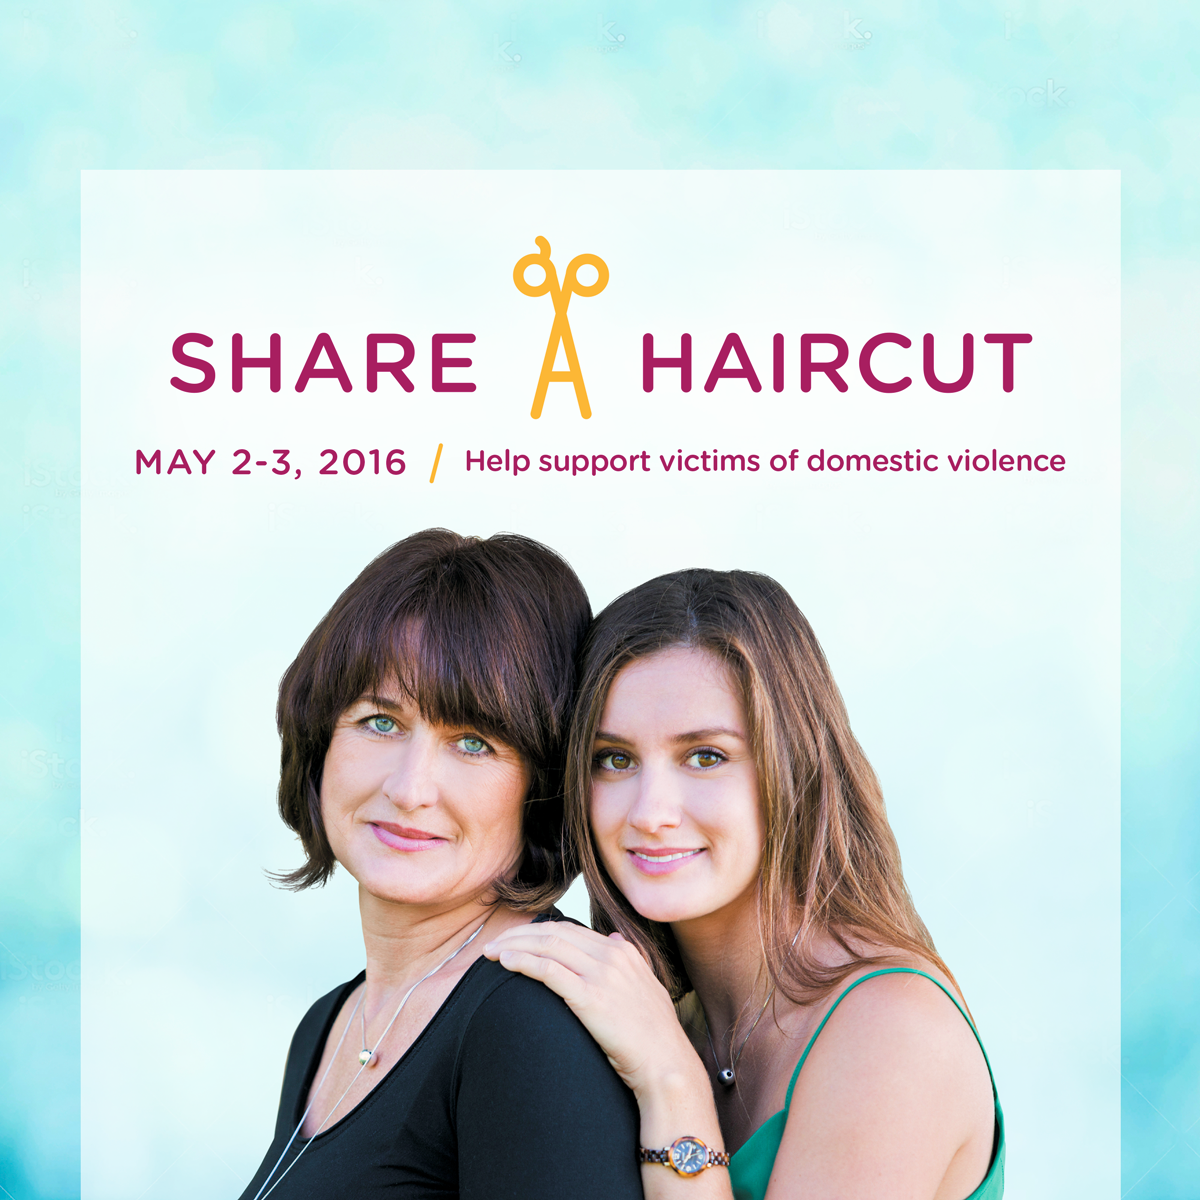 Share-A-Haircut with Hair Cuttery May 2-3, 2016! For every haircut, a haircut will be donated to someone in your community affected by domestic violence